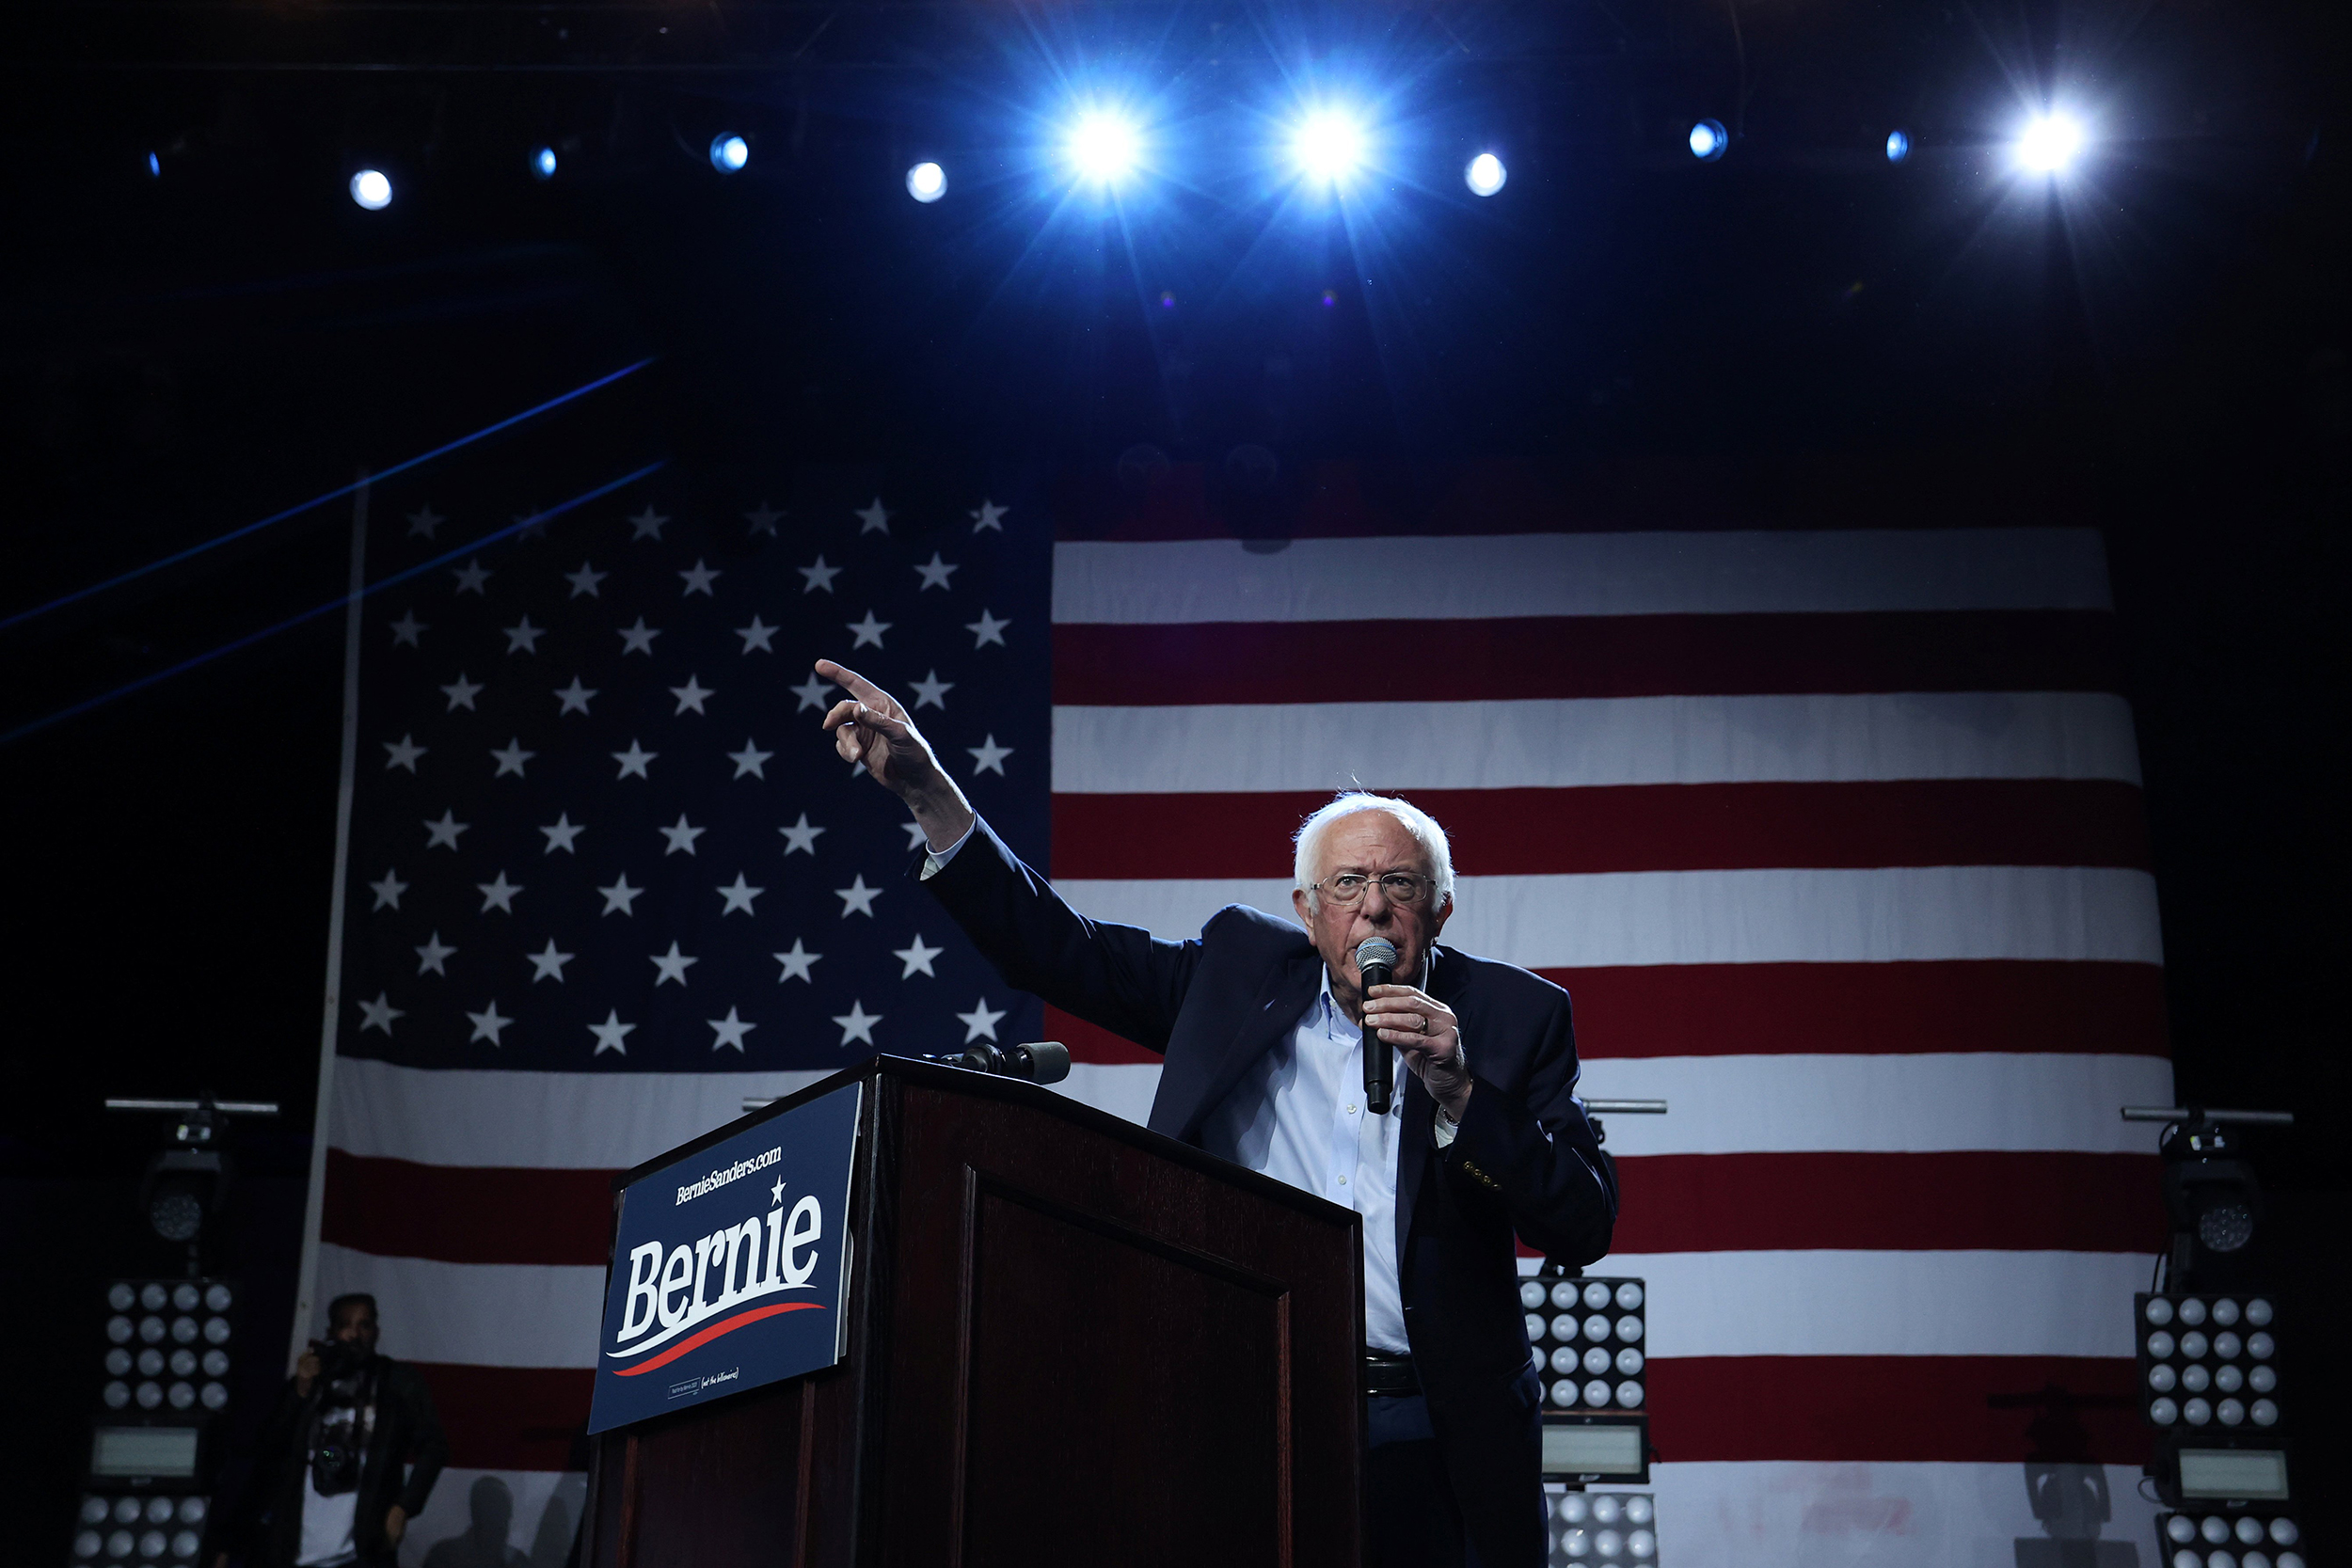 Read: Sanders' campaign ends without expanding his 2016 base